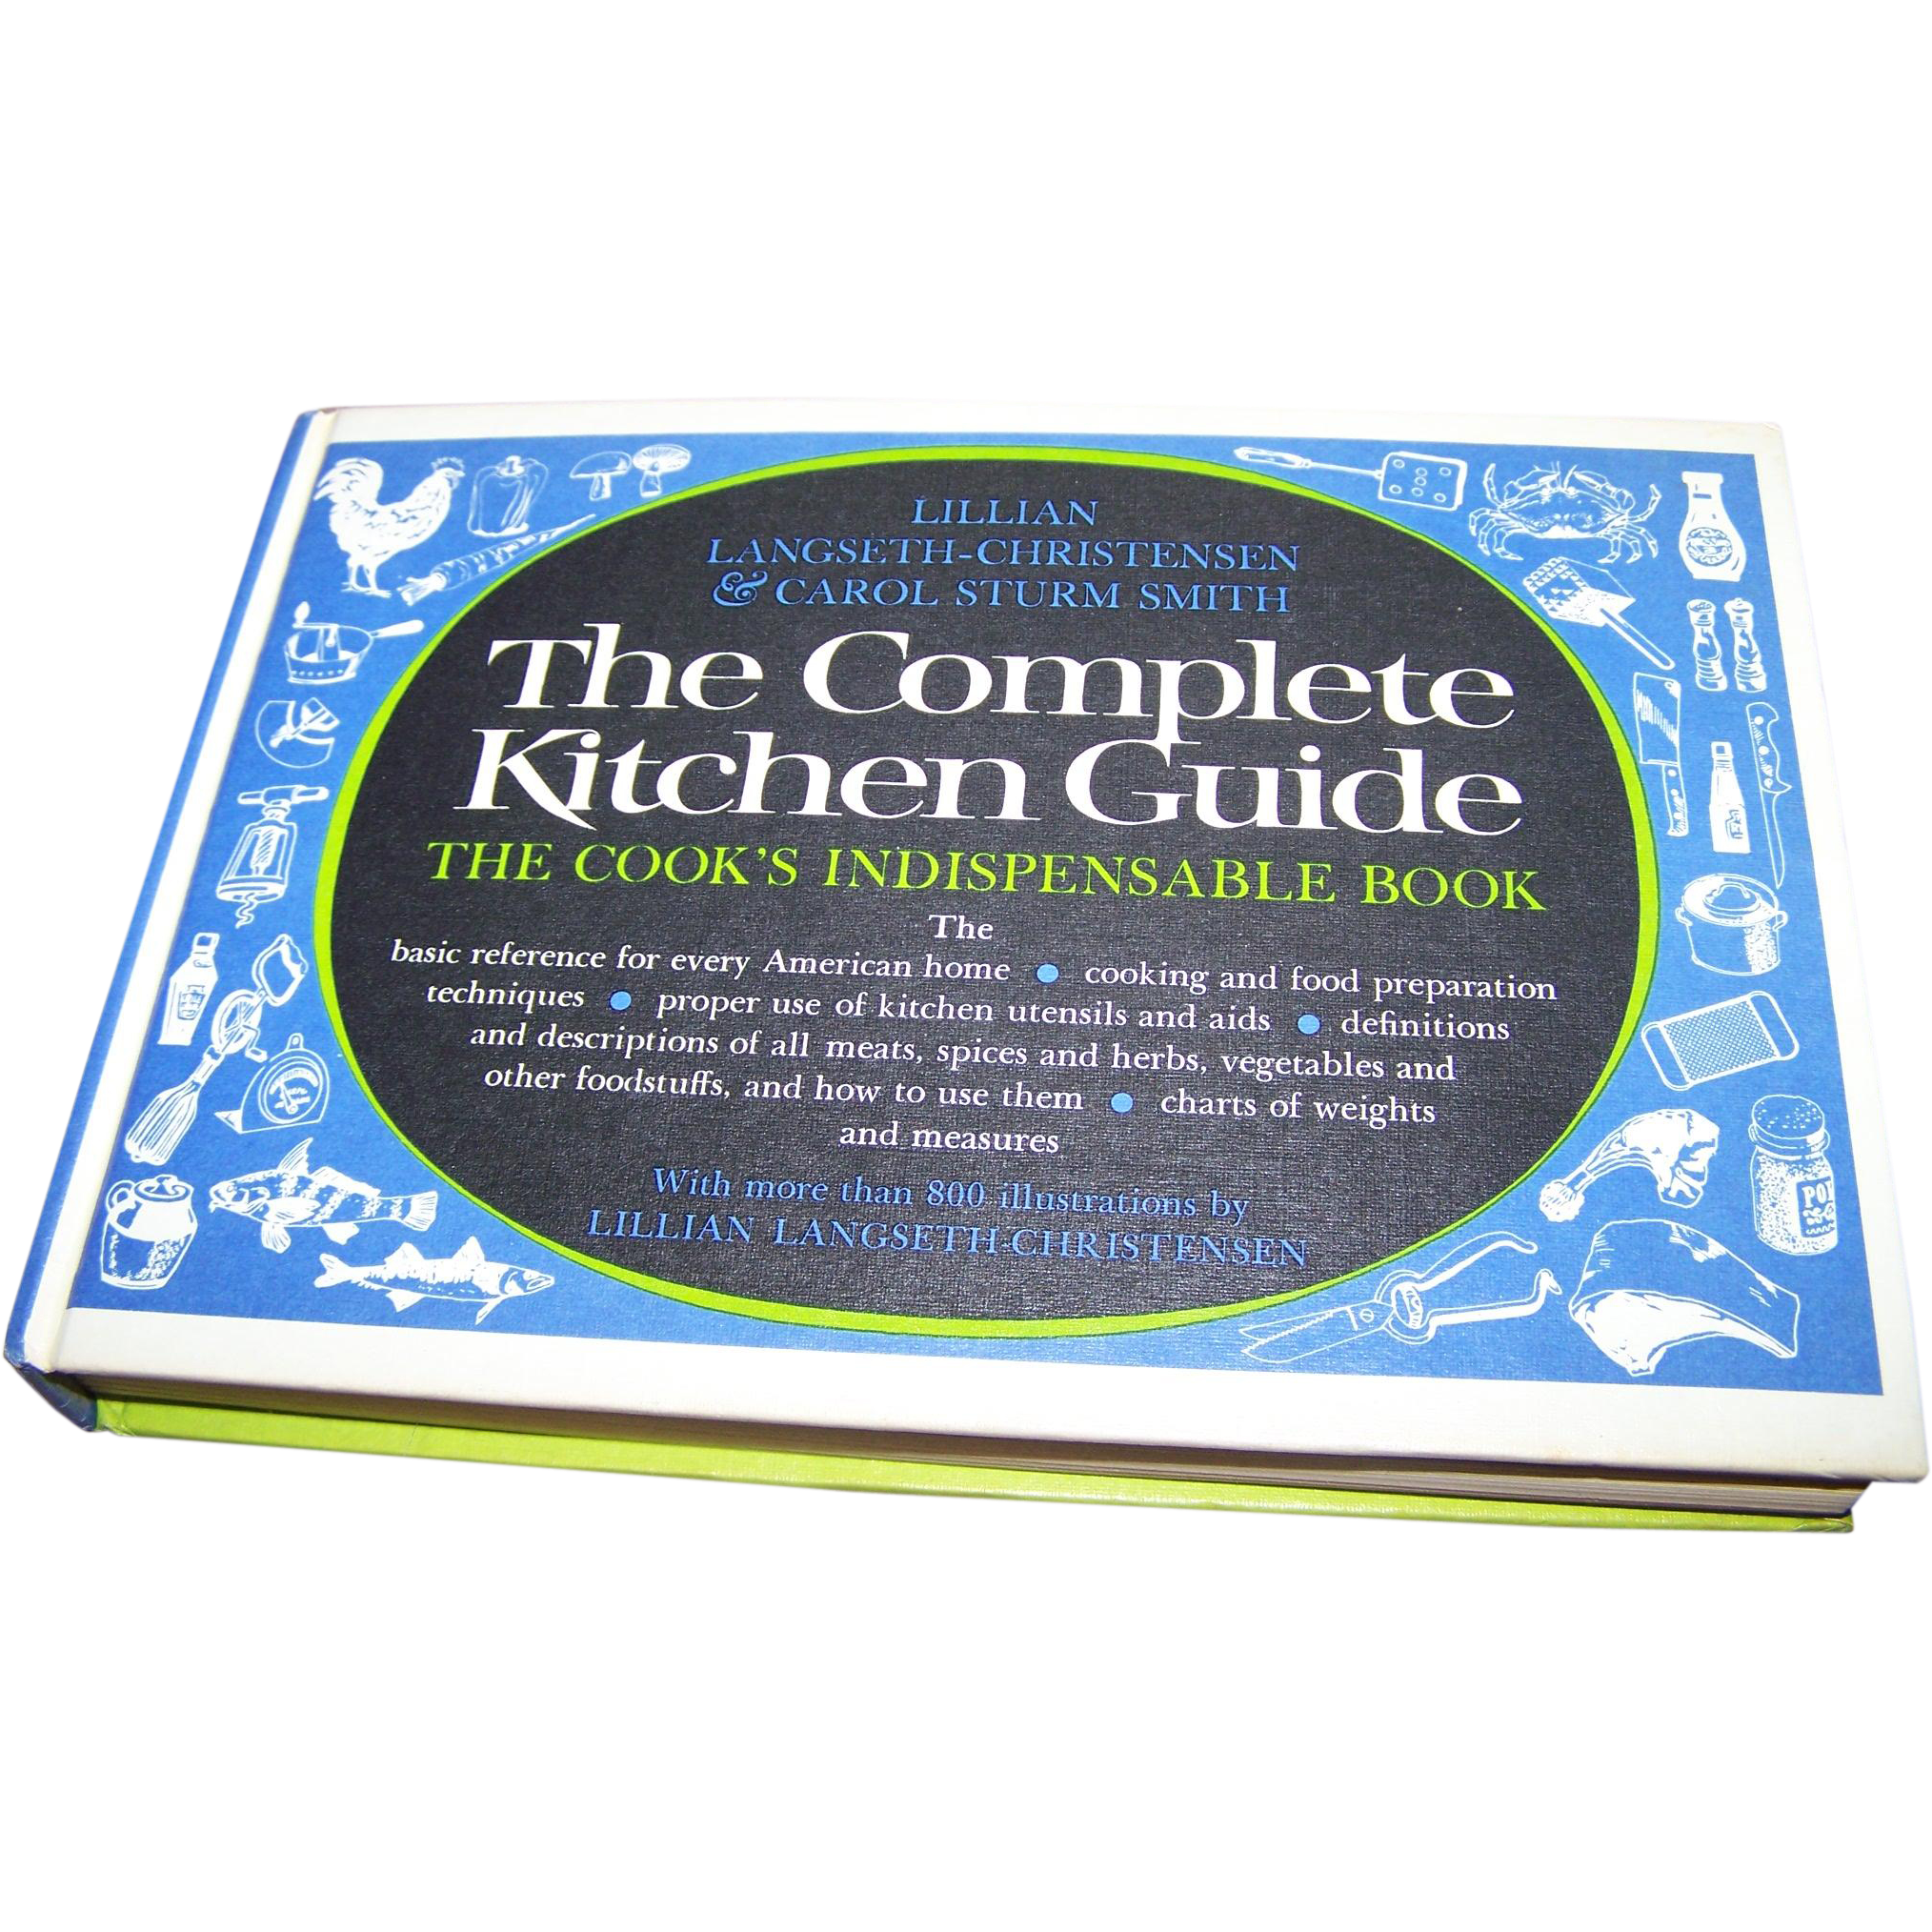 The Complete Kitchen Guide Hard Cover Book  with 800 Illustrations